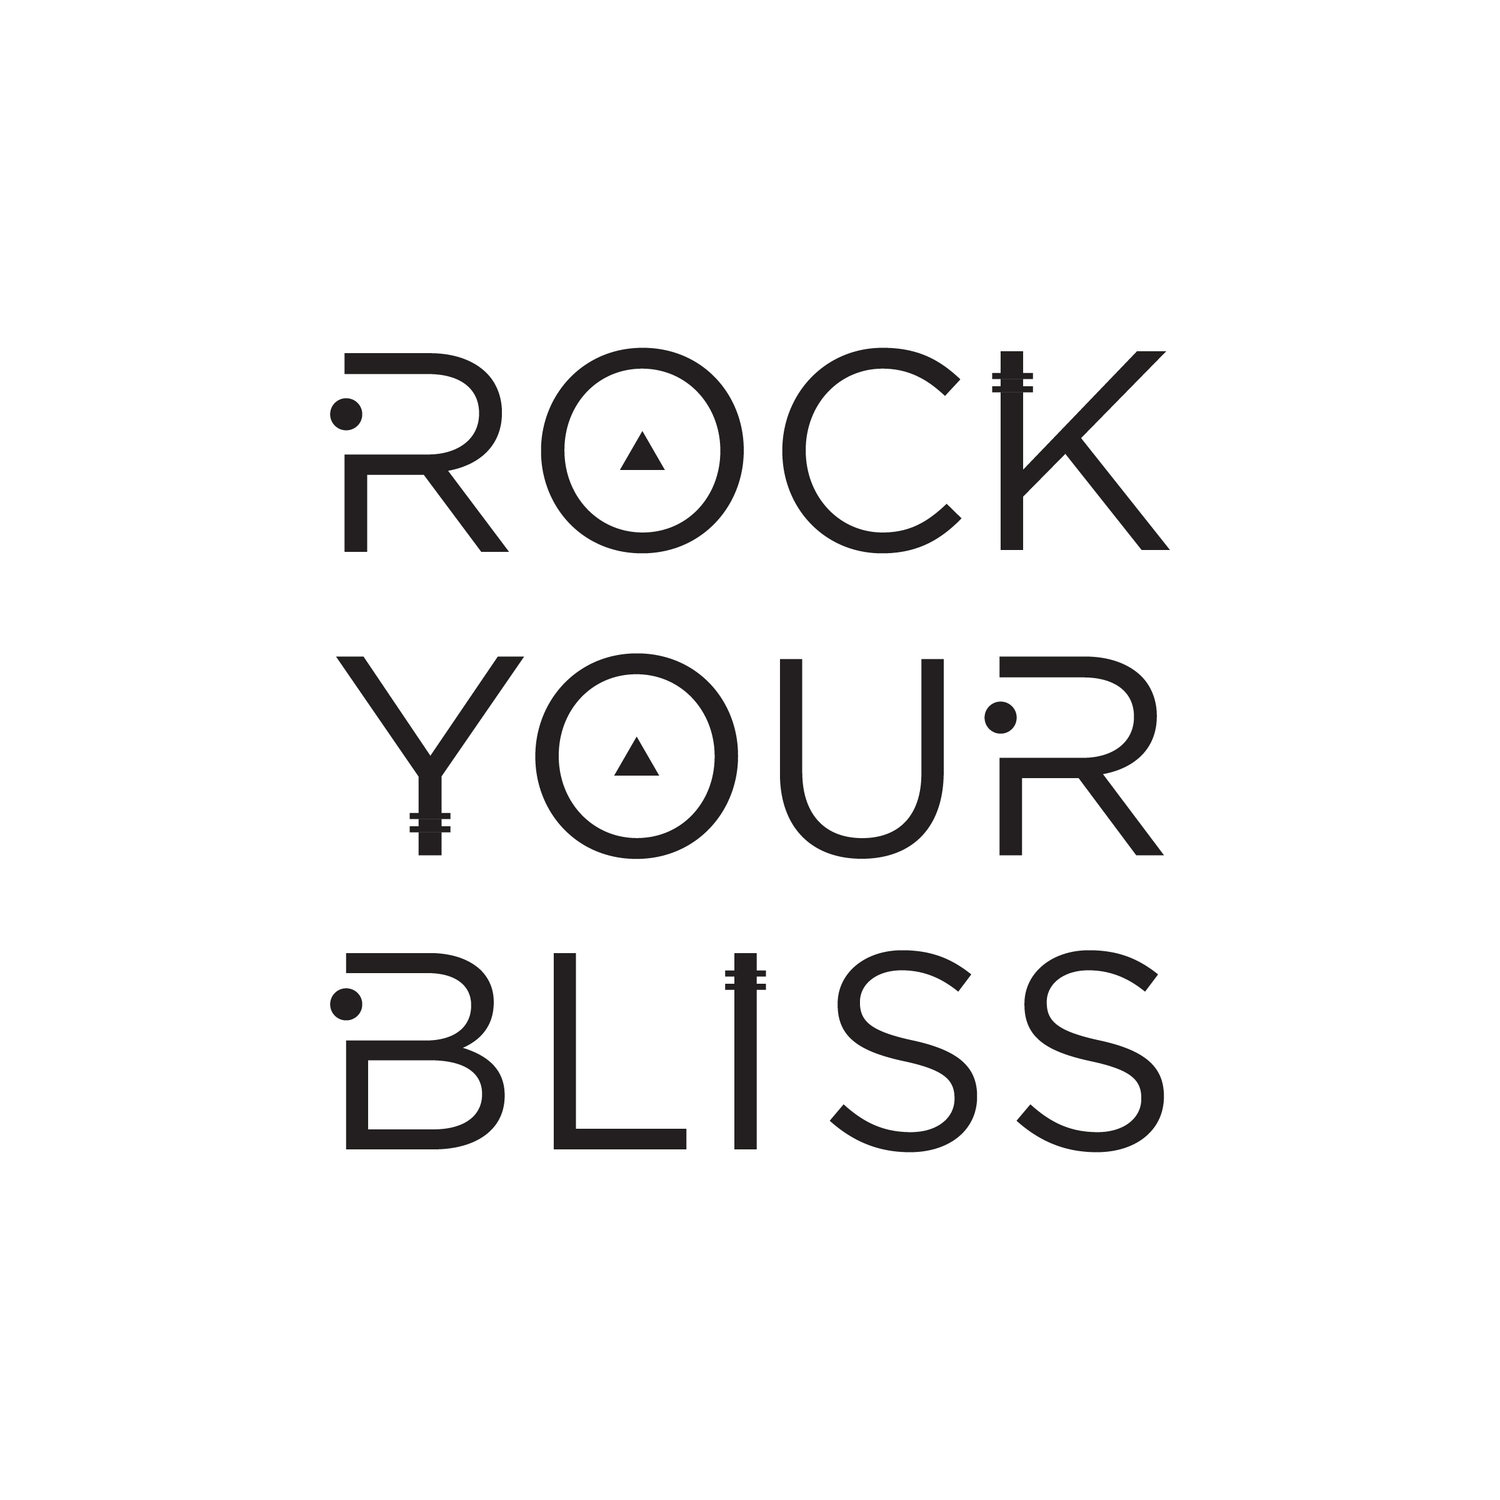 ROCK YOUR BLISS